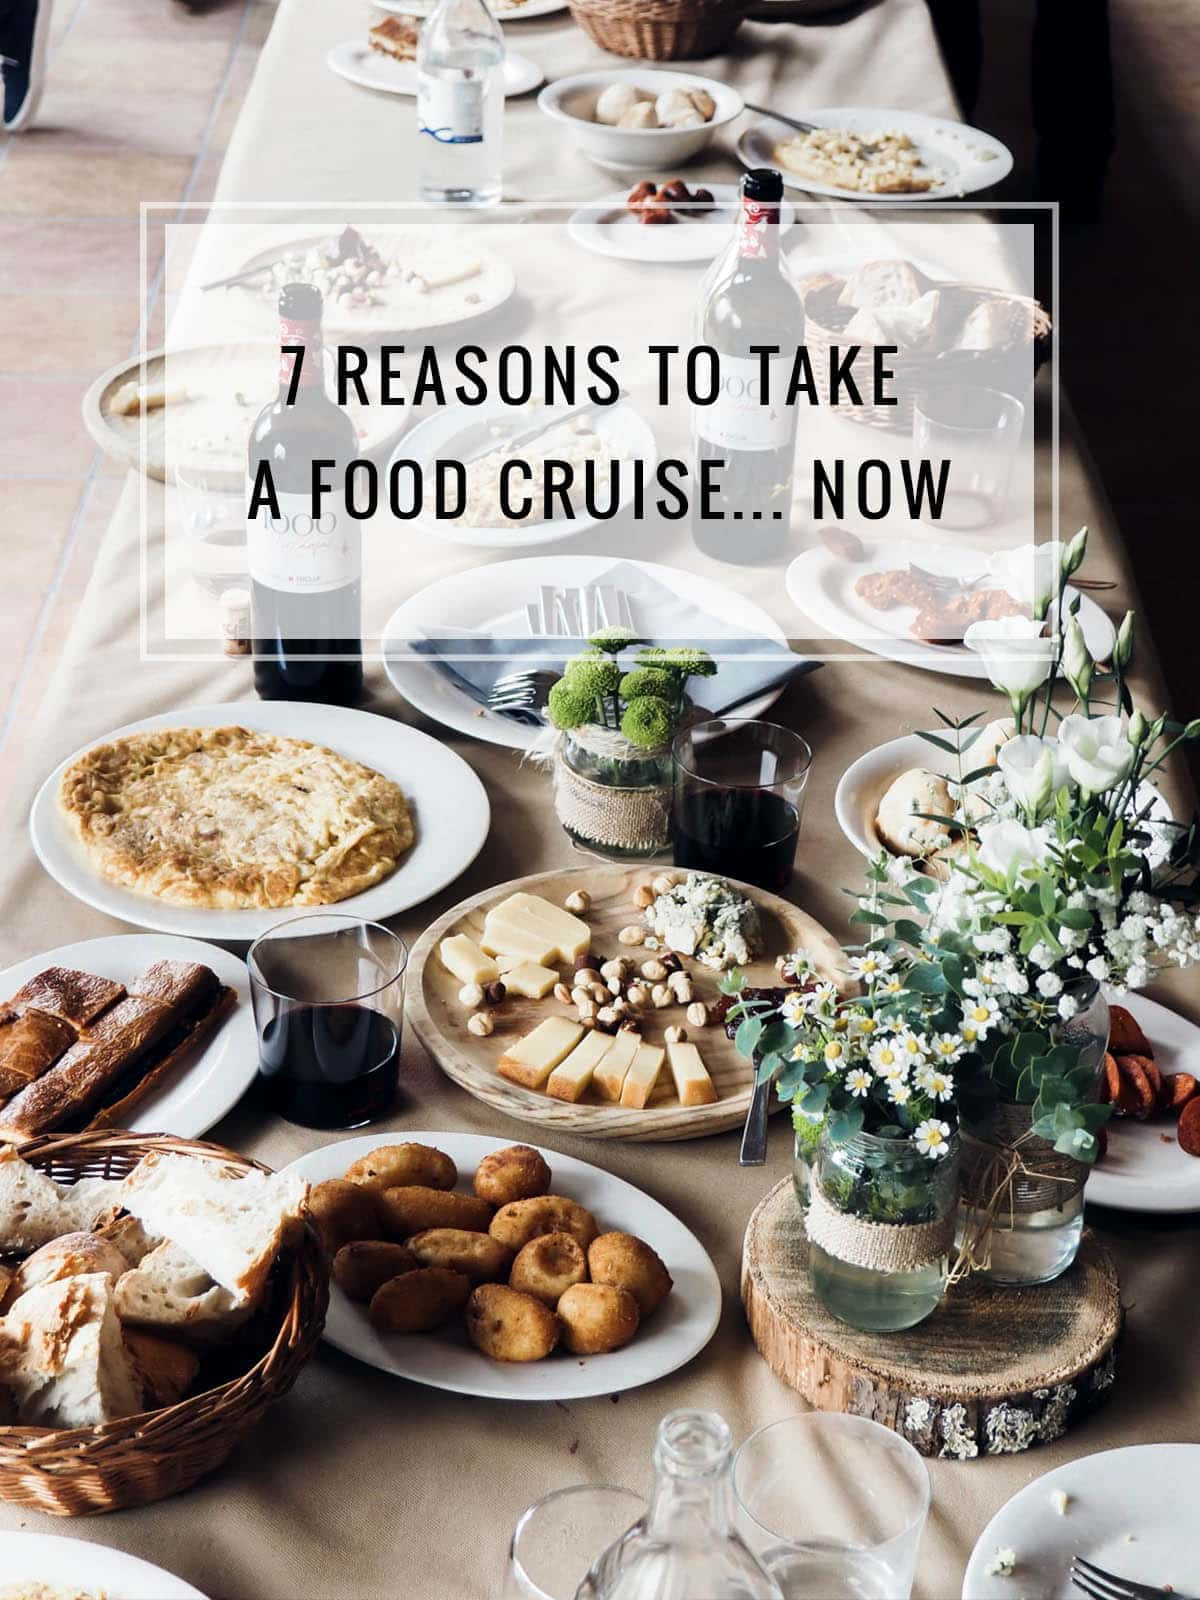 7 reasons to take a food cruise titl